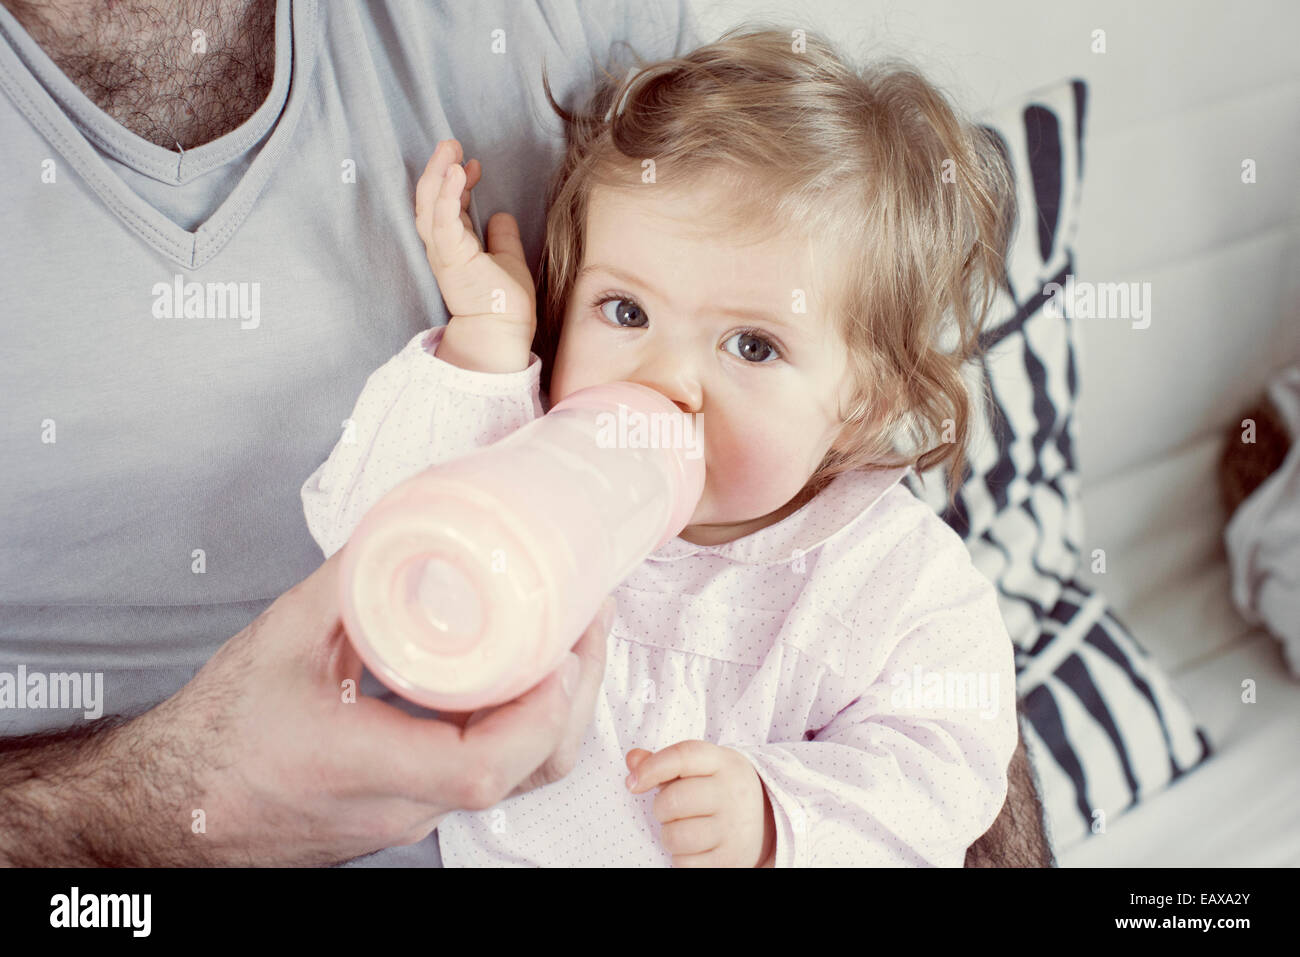 Baby girl sitting on father's lap, drinking from bottle, cropped - Stock Image